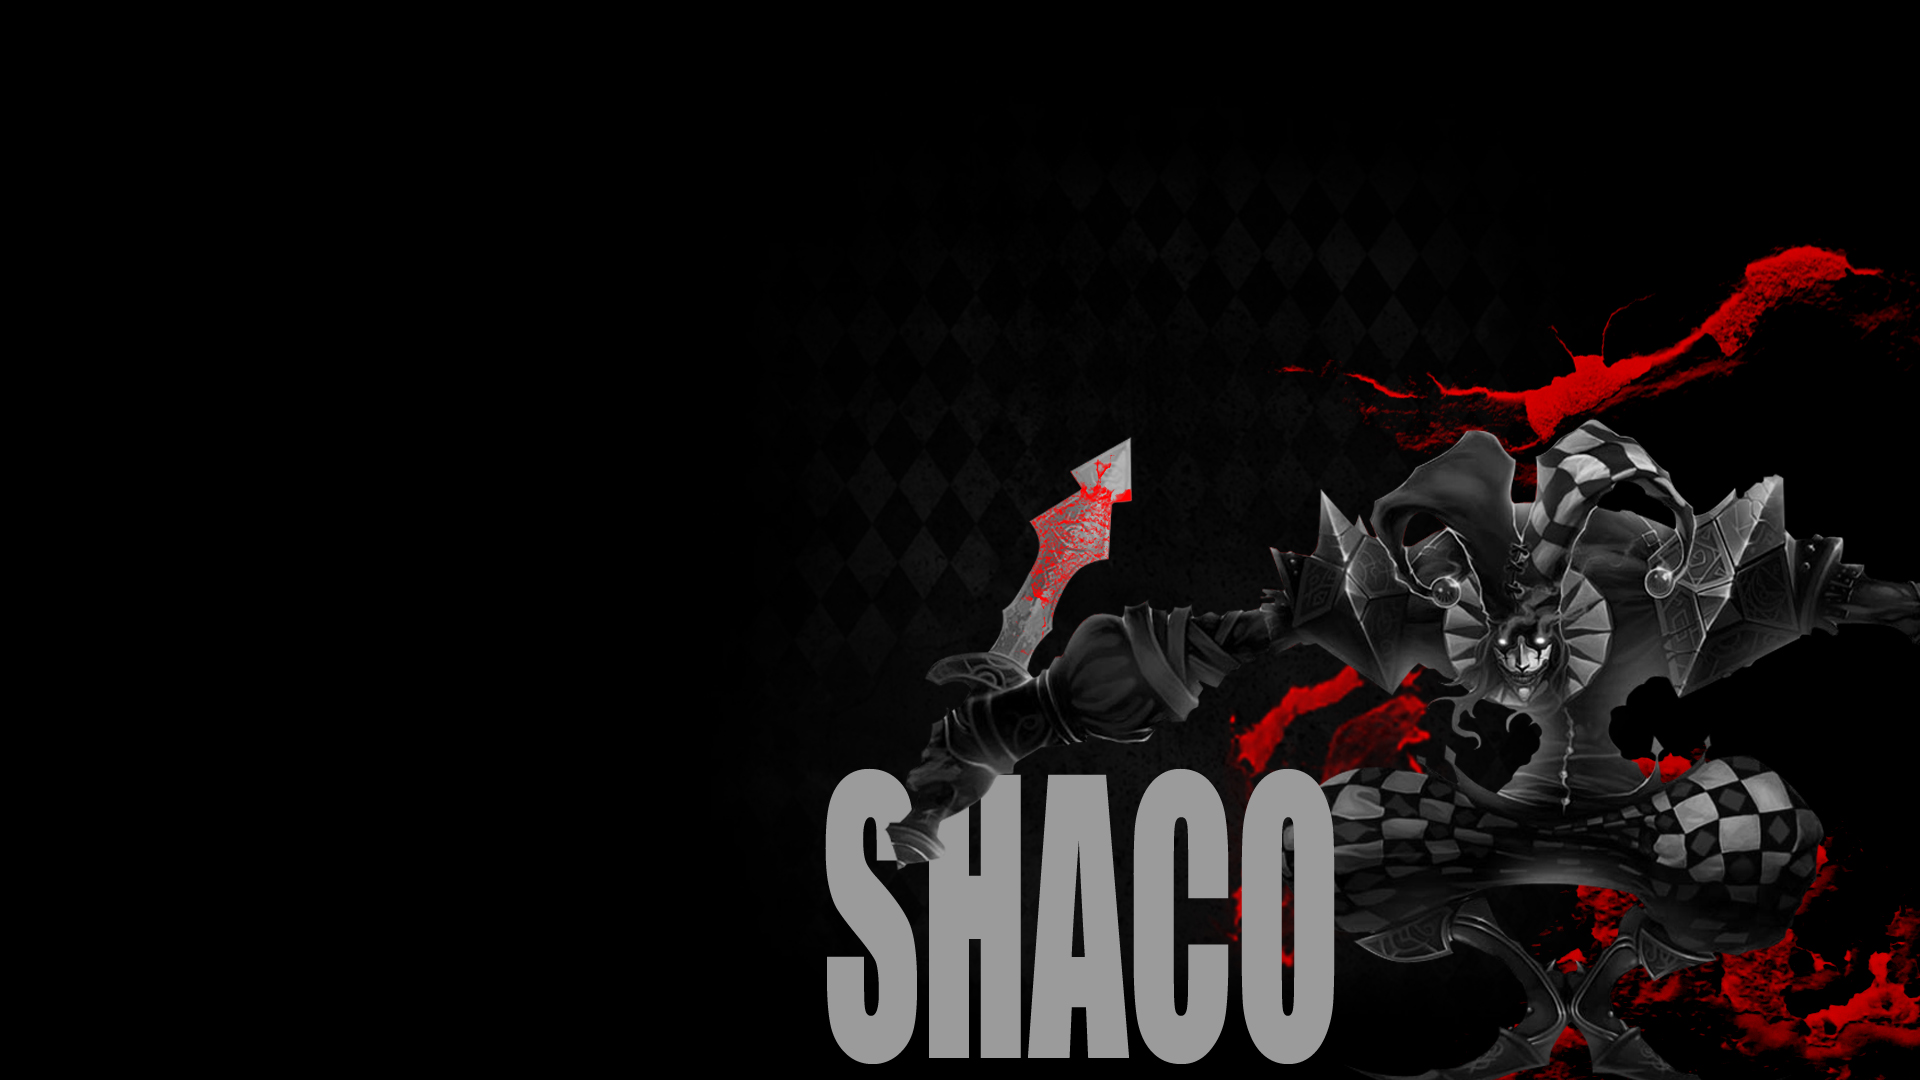 Shaco wallpaper 1920x1080 can customize by xonsole on deviantart shaco wallpaper 1920x1080 can customize by xonsole voltagebd Gallery